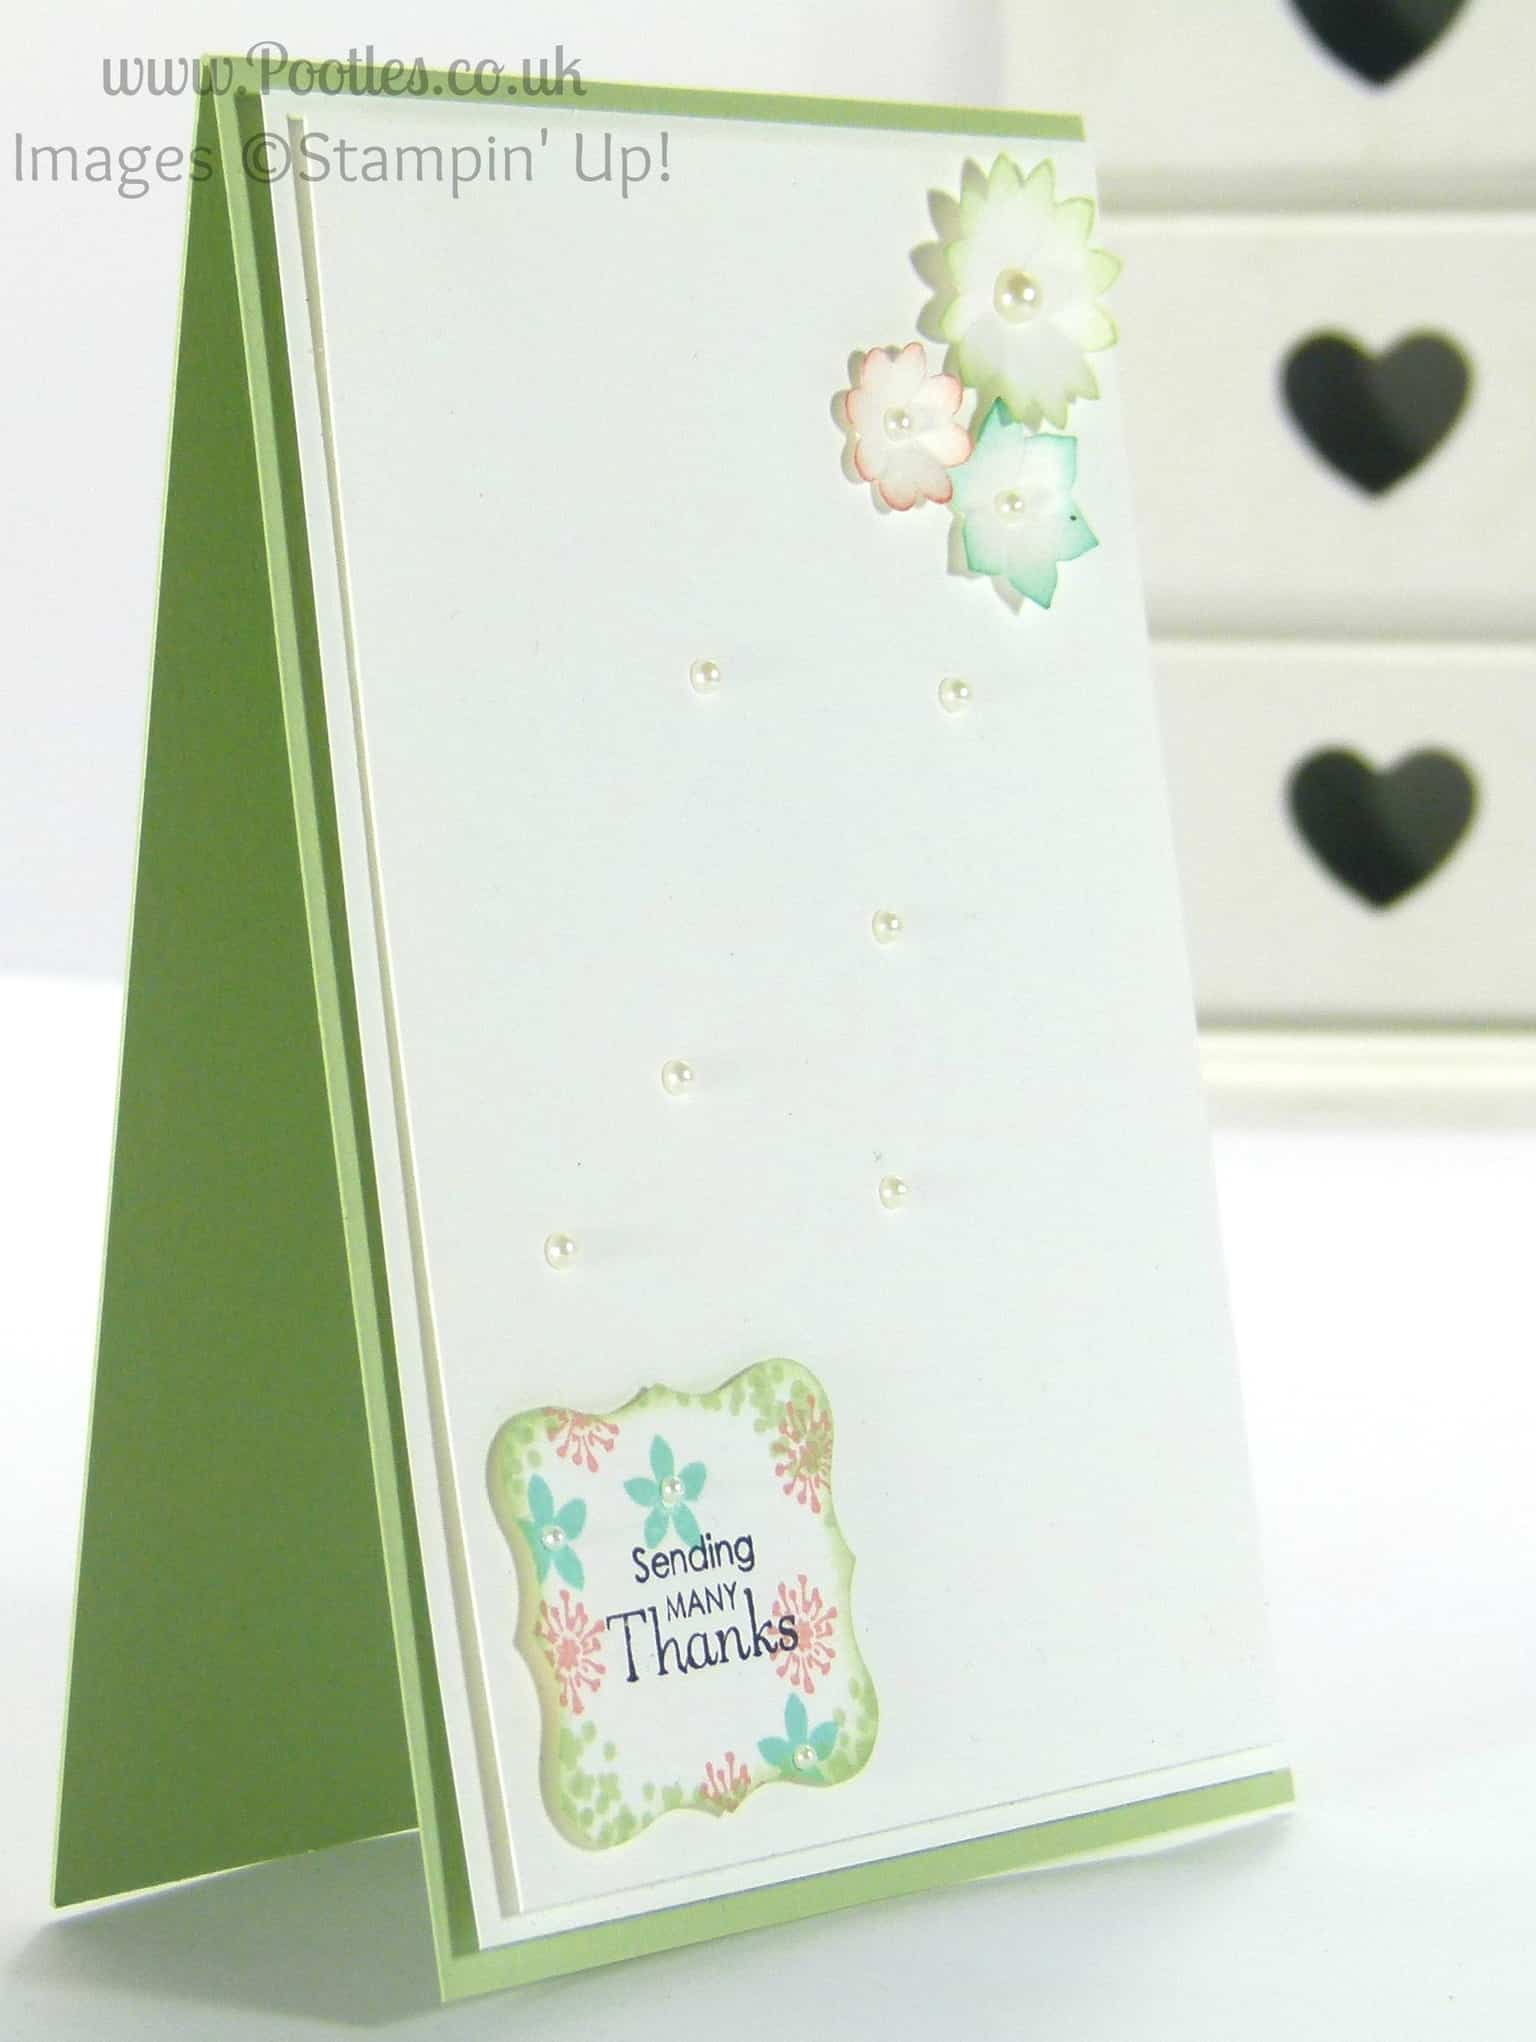 Stampin' Up! Demonstrator - Pootles. Background Stamped Punch Outs using ©Stampin' Up! Summer Sillhouettes